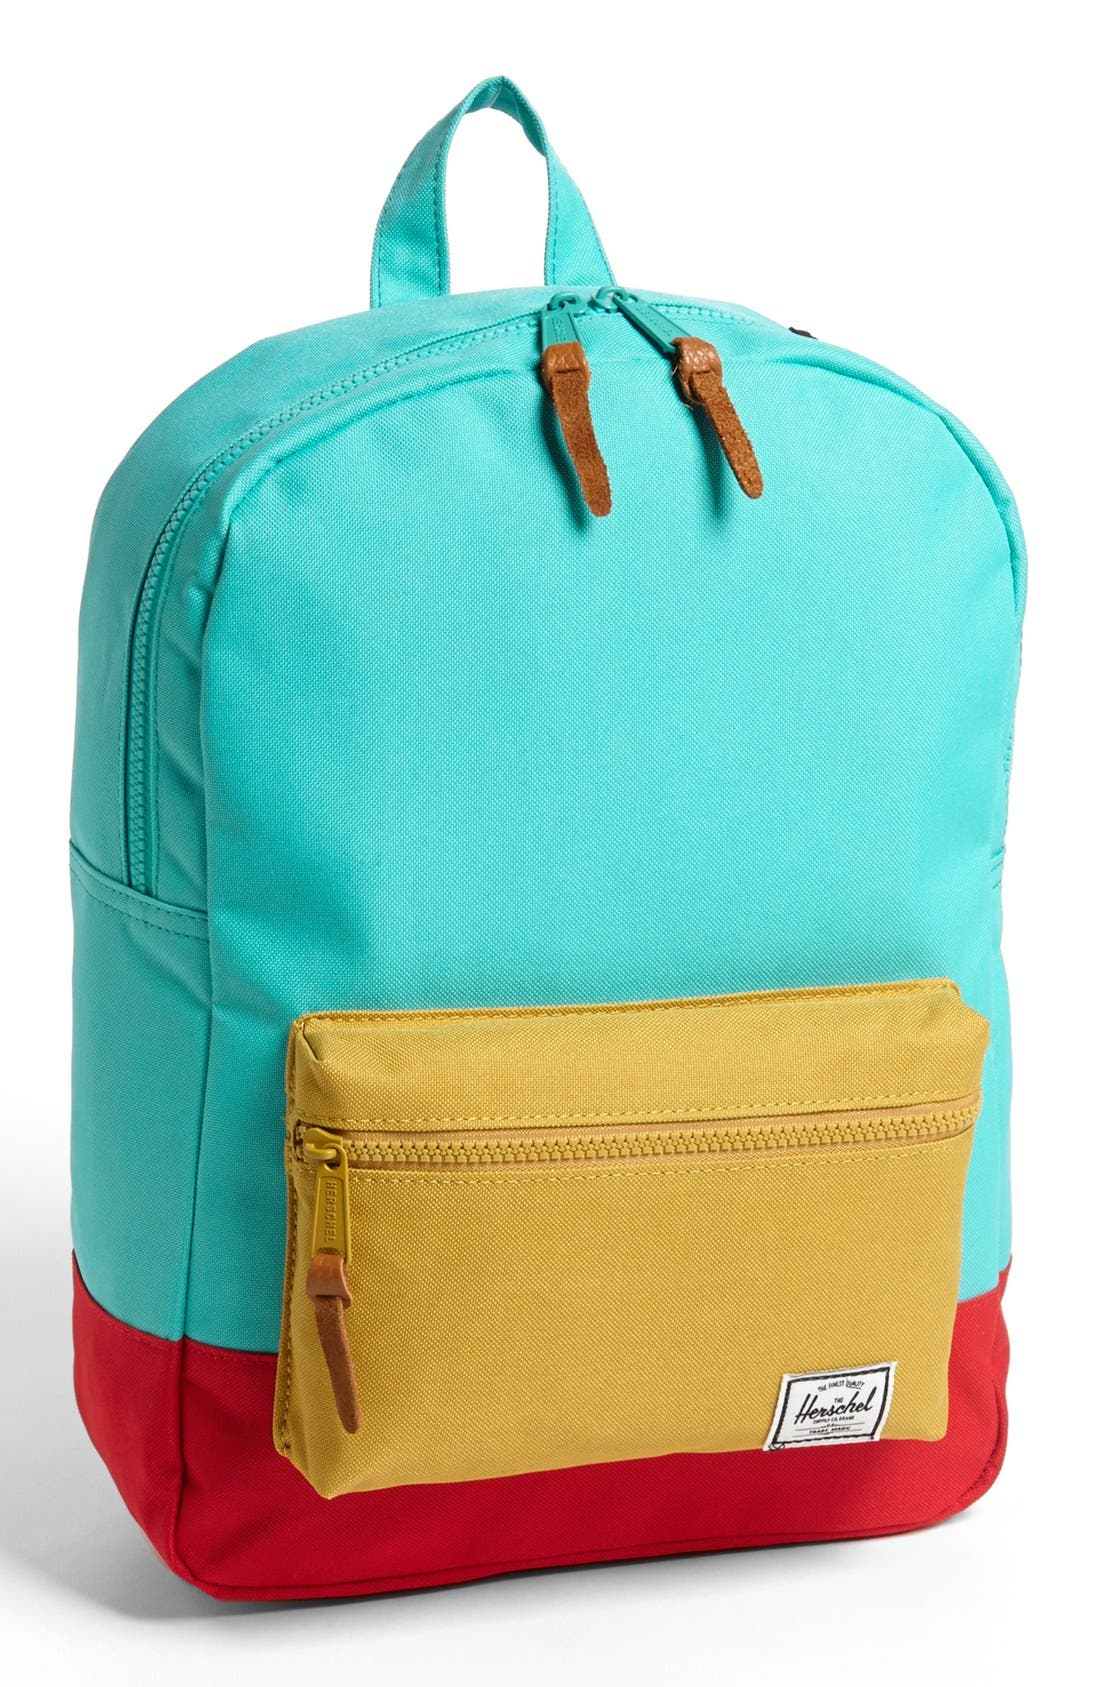 Alternate Image 1 Selected - Herschel Supply Co. 'Settlement' Backpack (Girls)